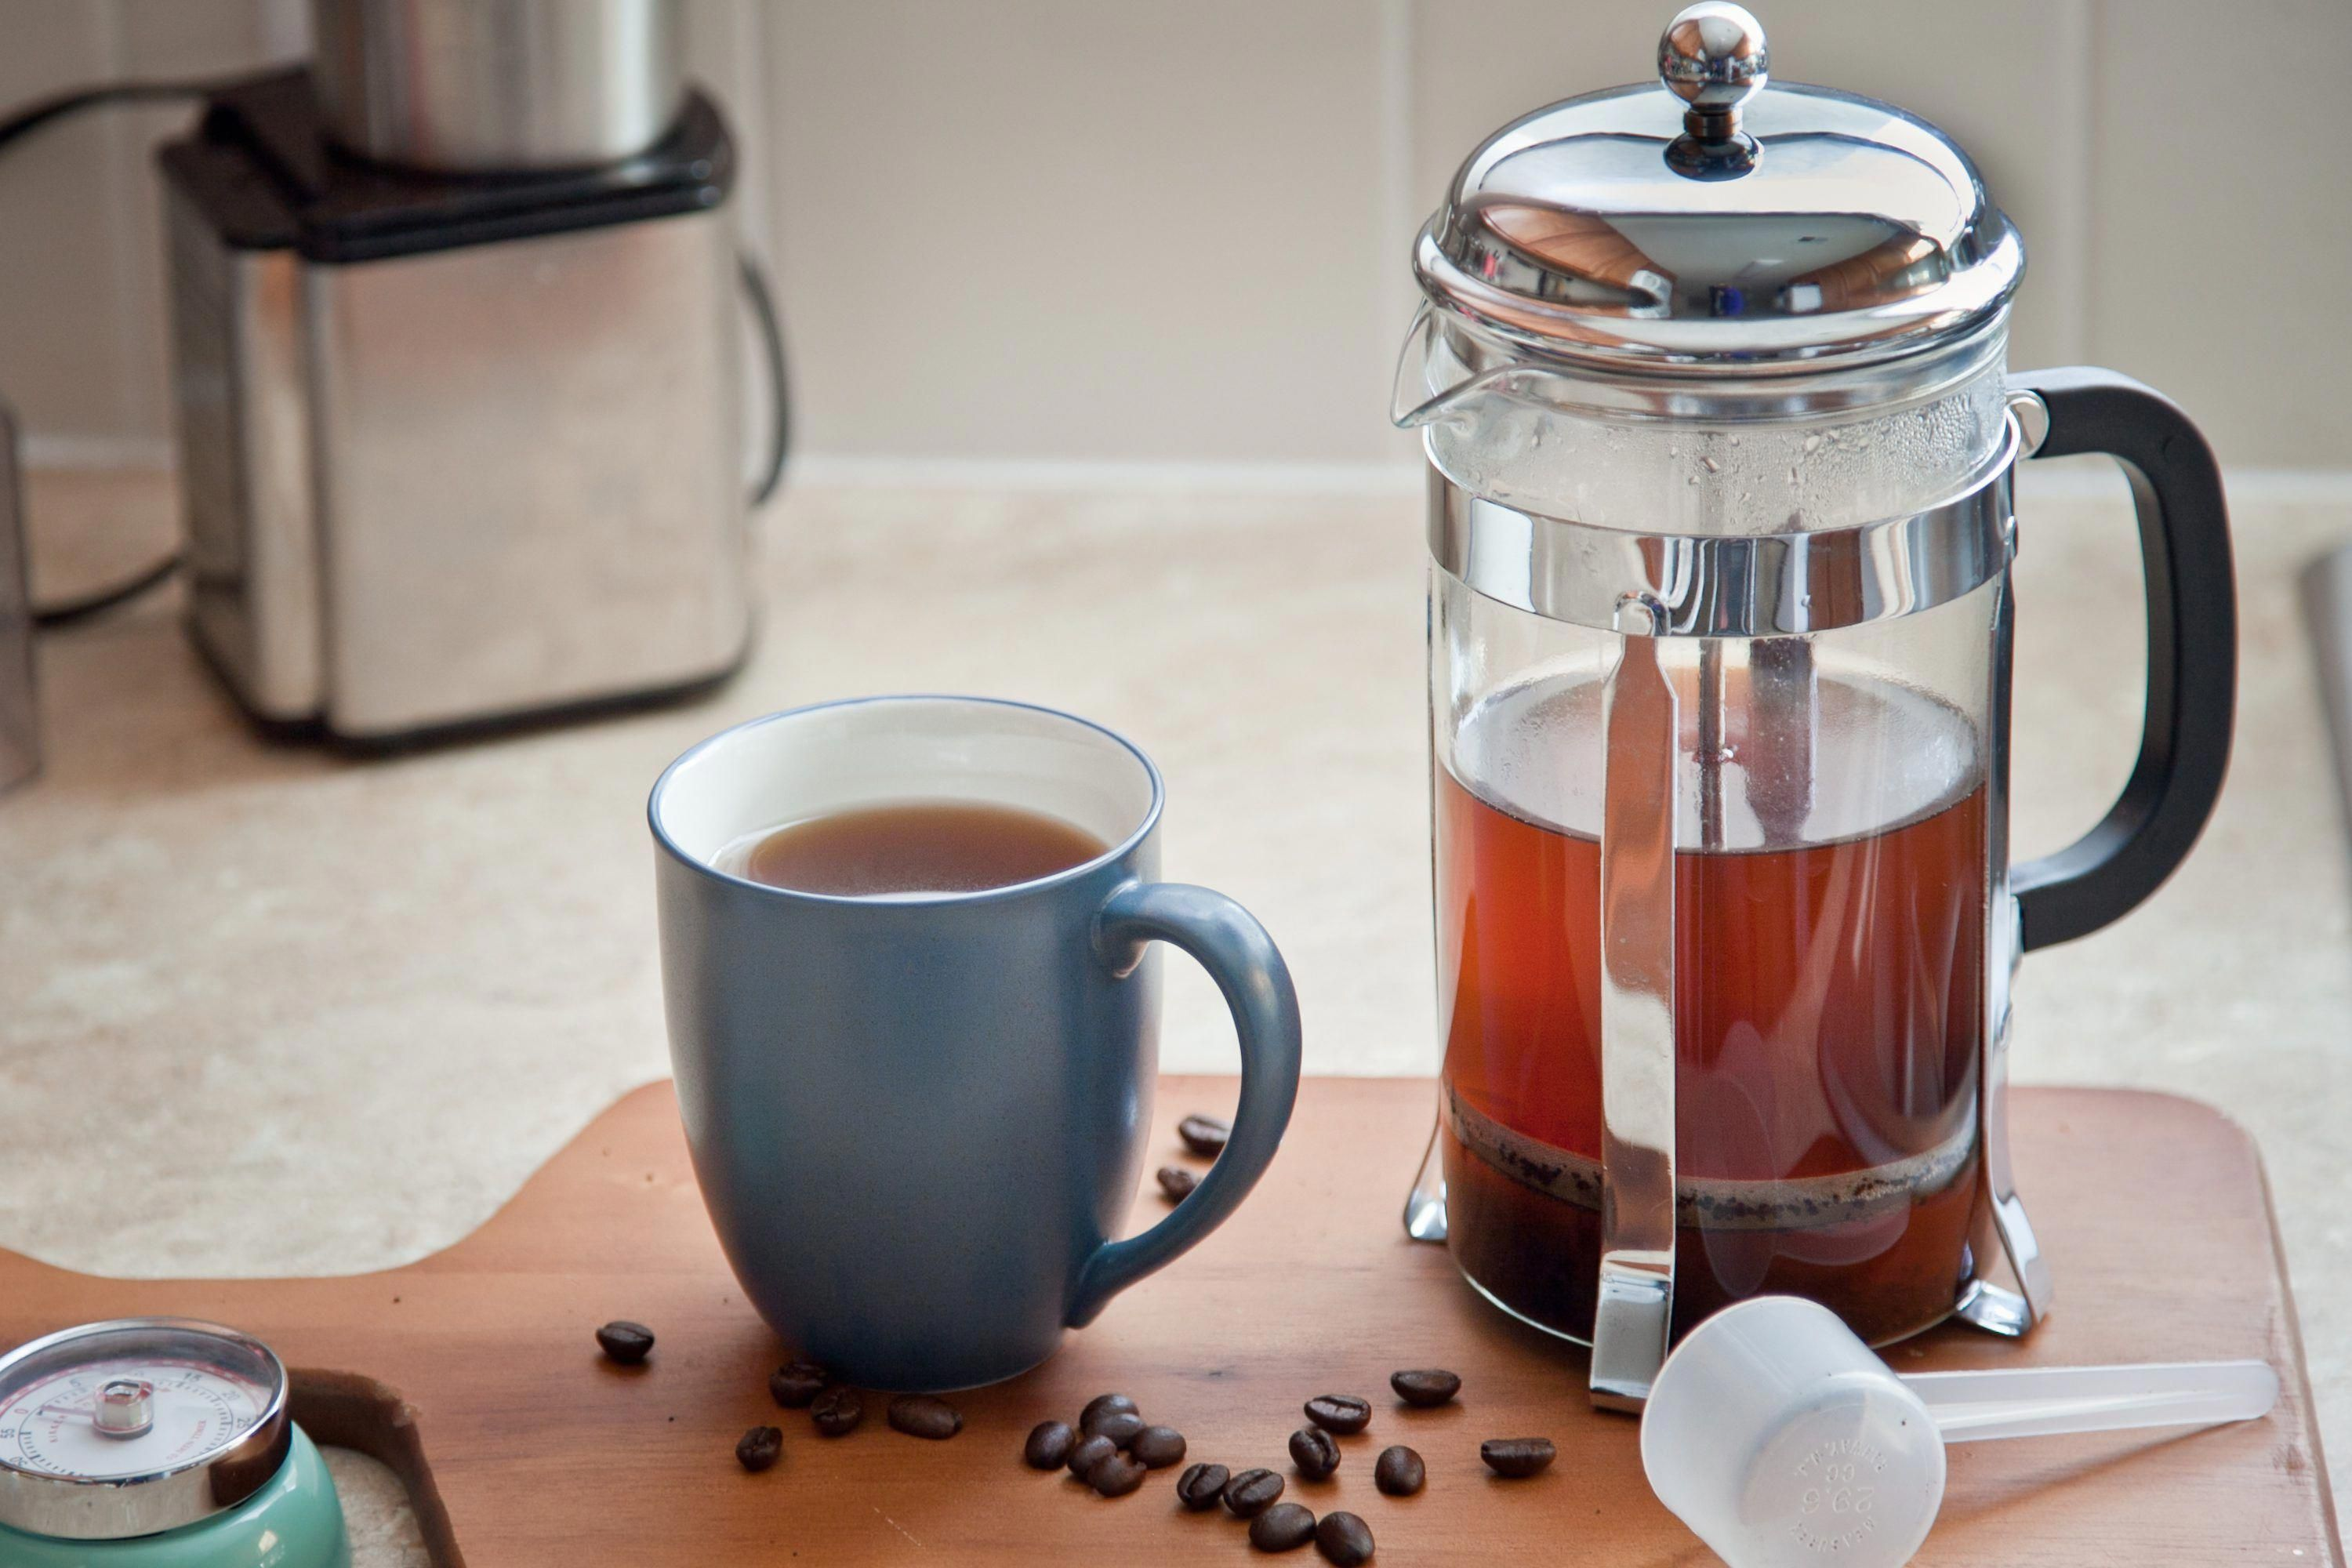 How to make french press coffee using a french press to